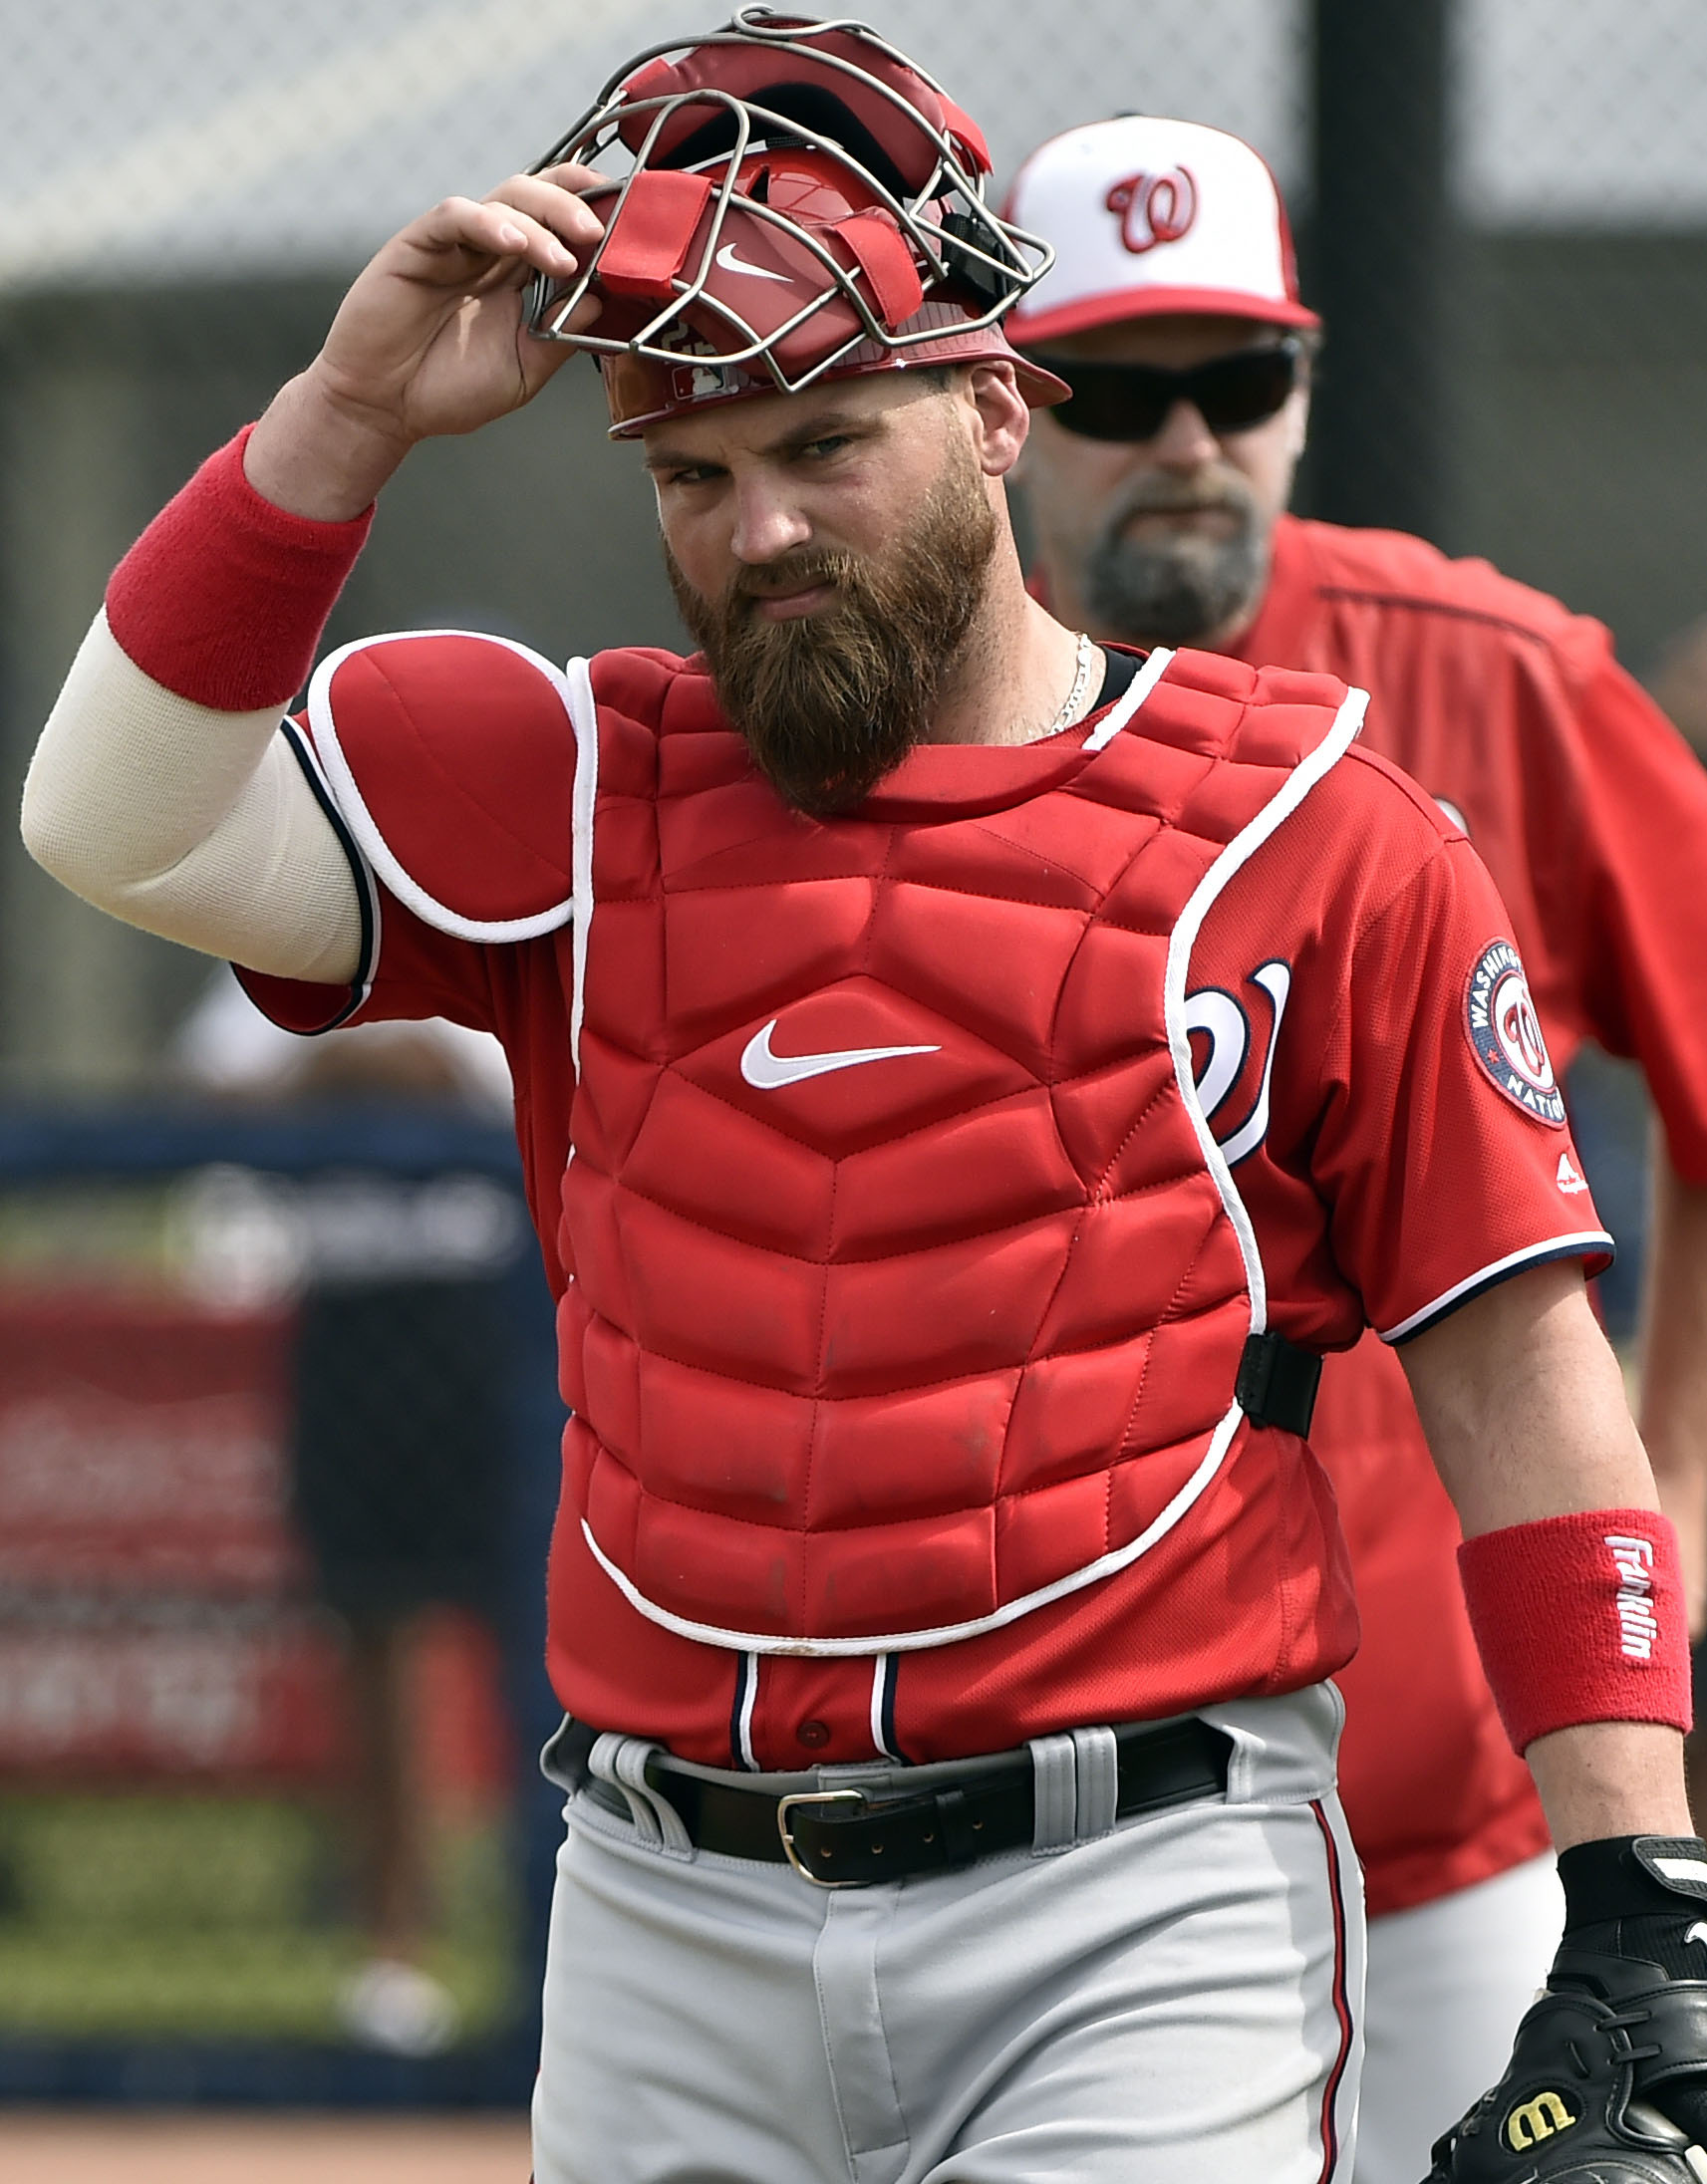 9891294-mlb-washington-nationals-workouts-1